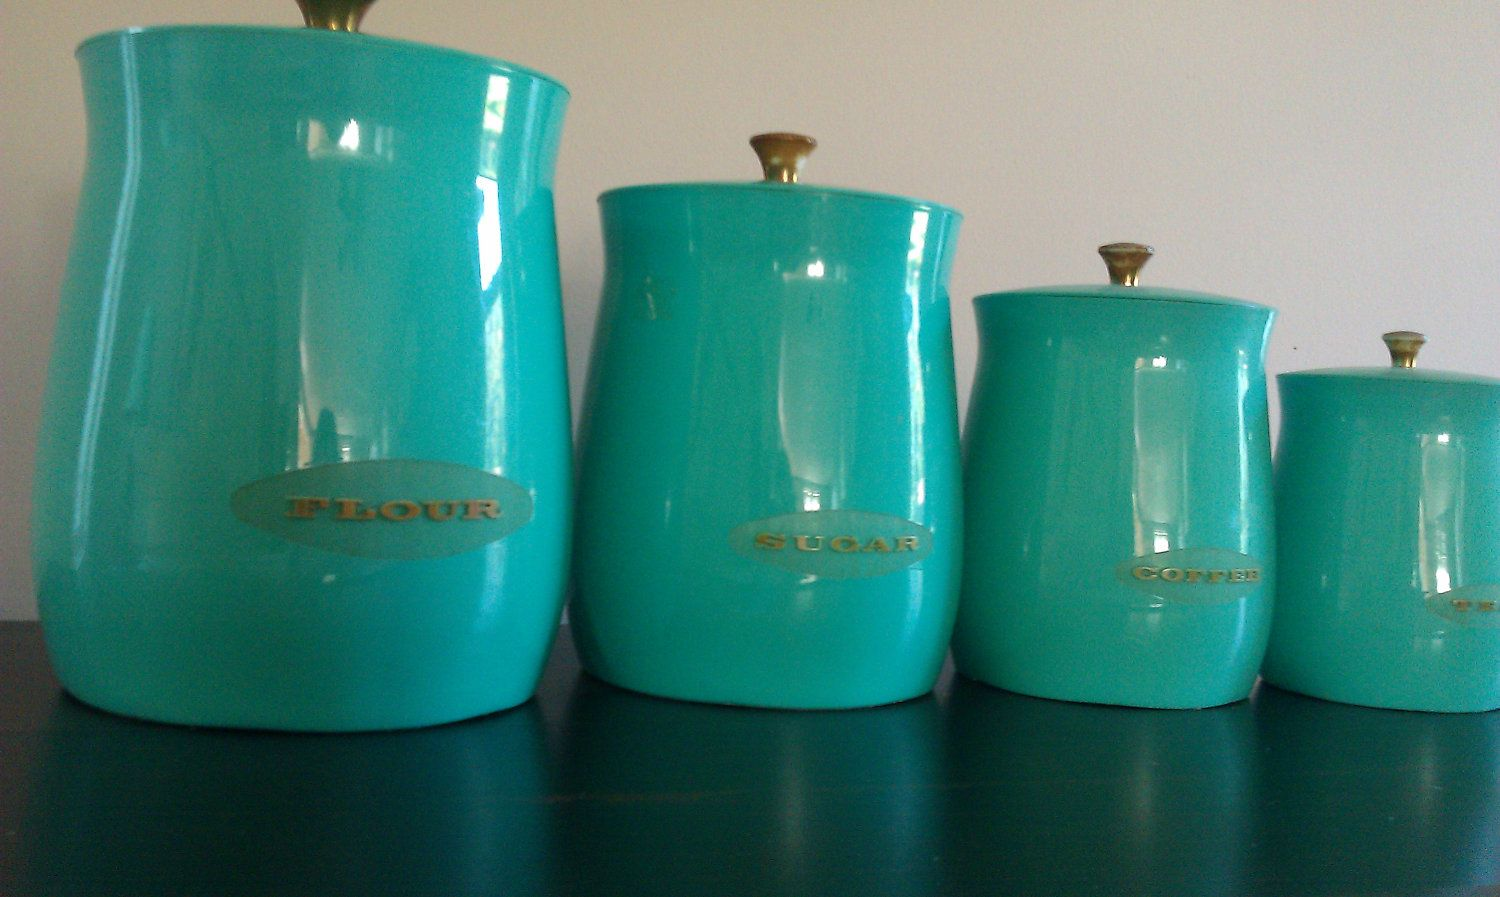 Vintage Teal And Gold Canister Set Blue Kitchen Canisters Teal